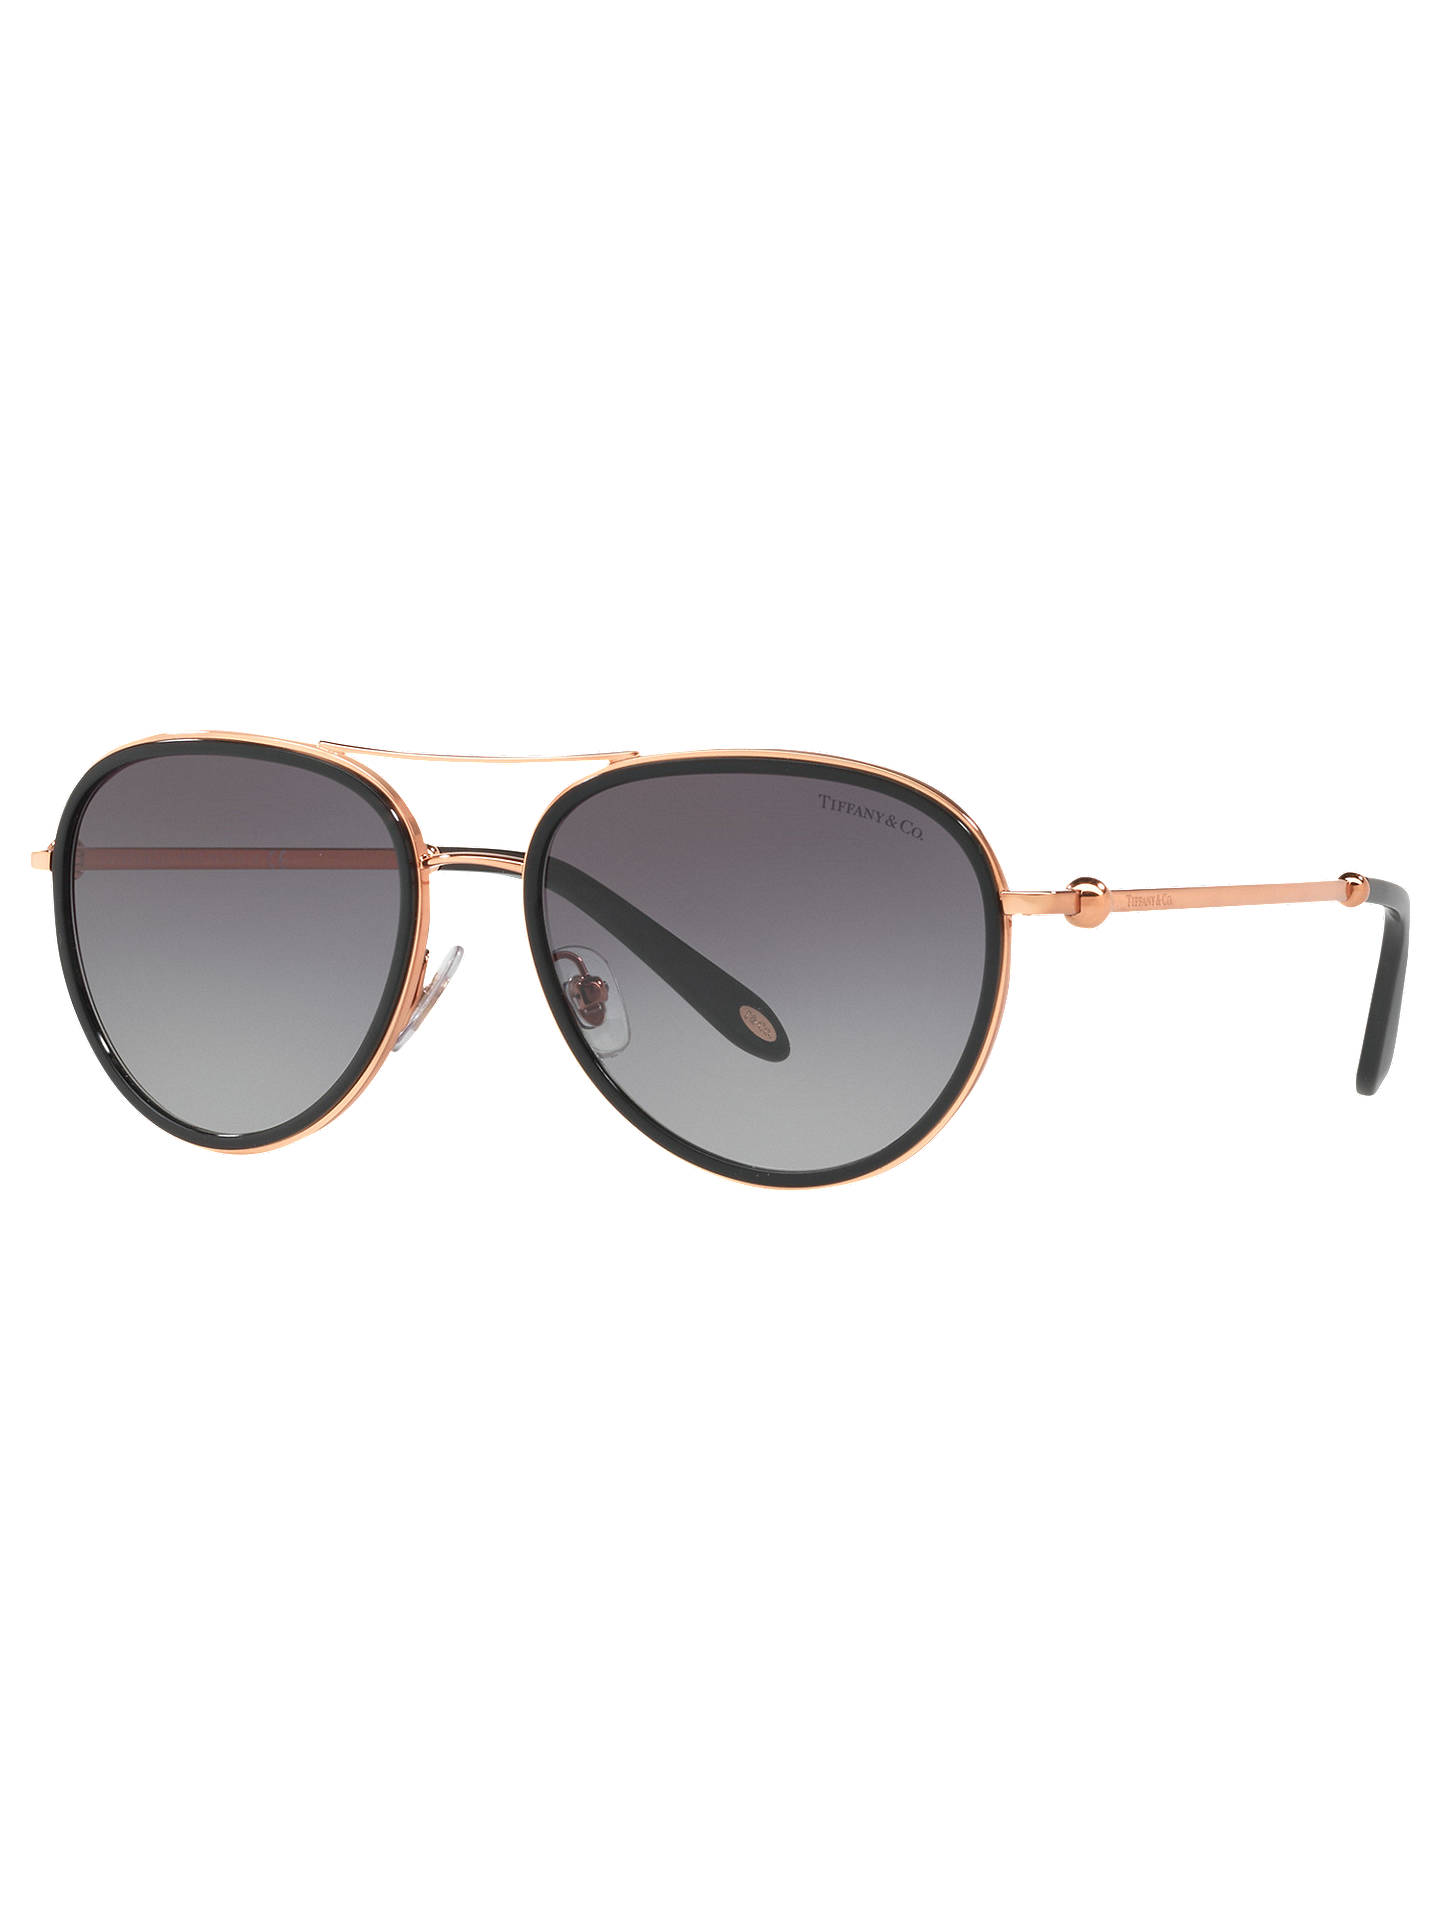 0fade5f3b179 Buy Tiffany & Co TF3059 Women's Aviator Sunglasses, Rose Gold/Grey Gradient  Online at ...